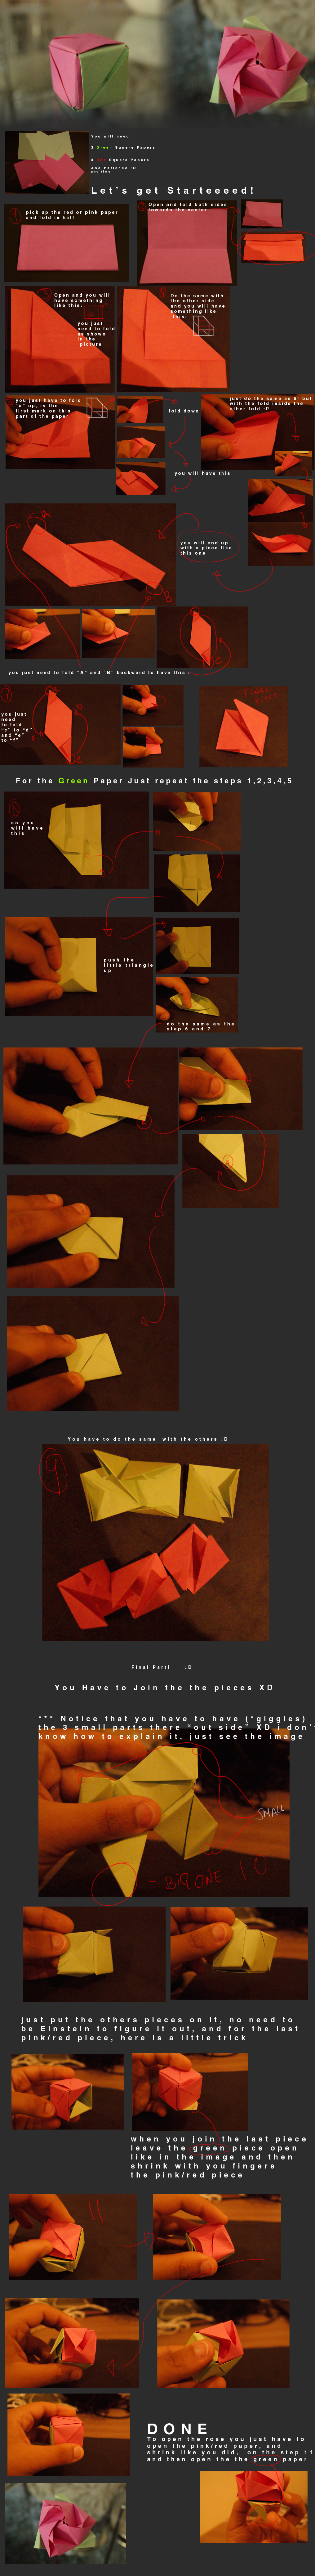 Magic Box Origami tutorial by CarlosArthur